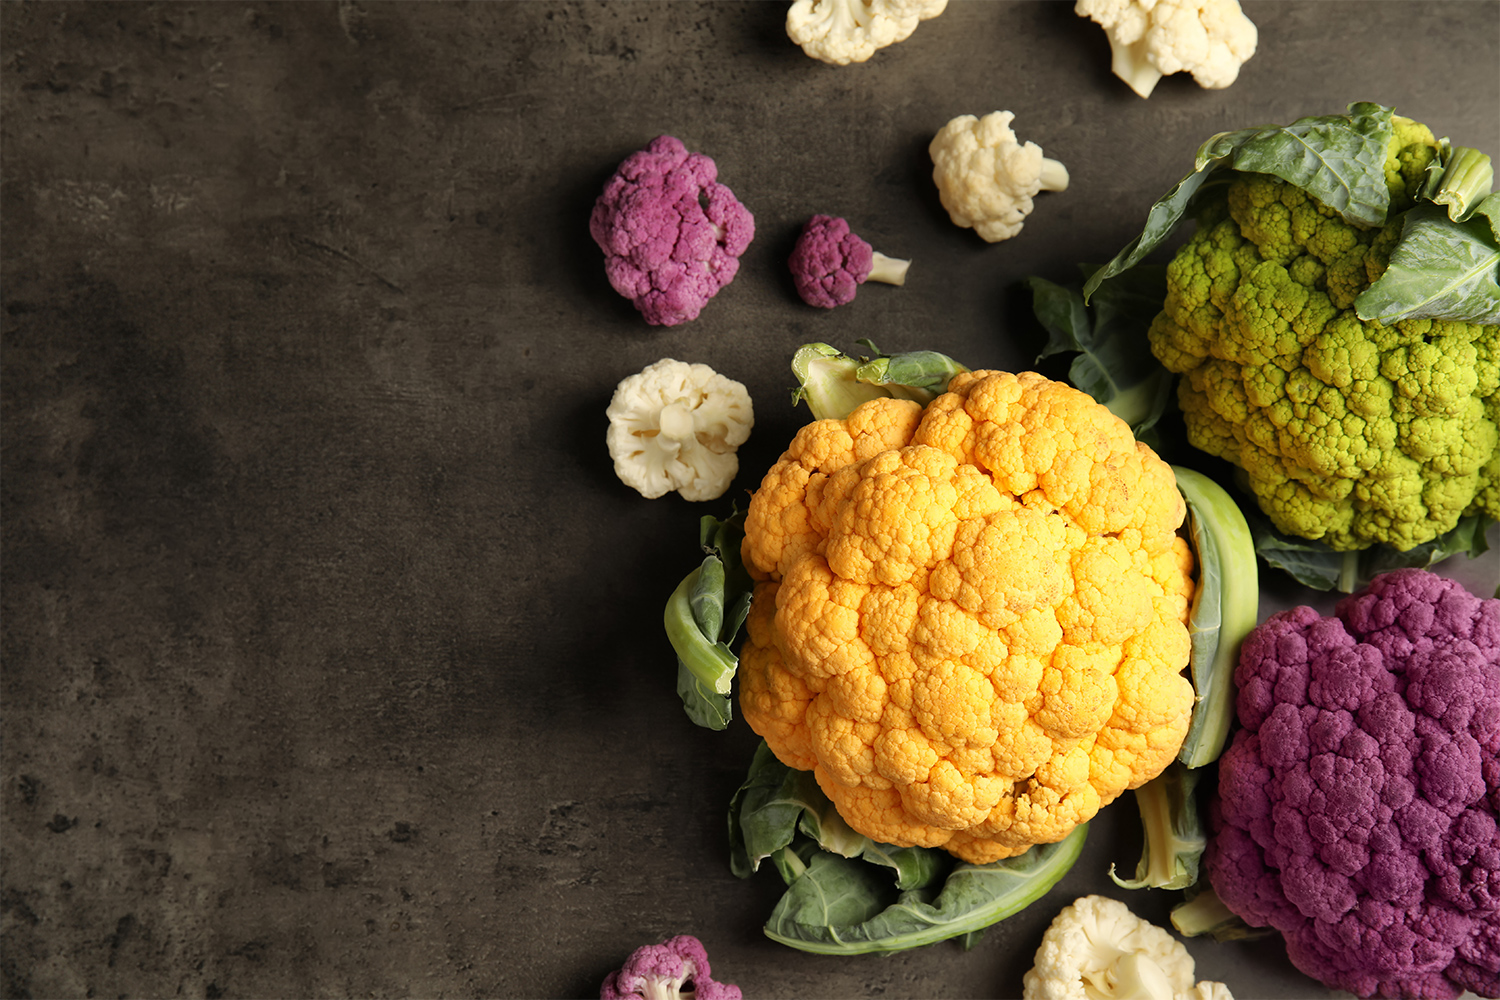 Get Creative with Cauliflower